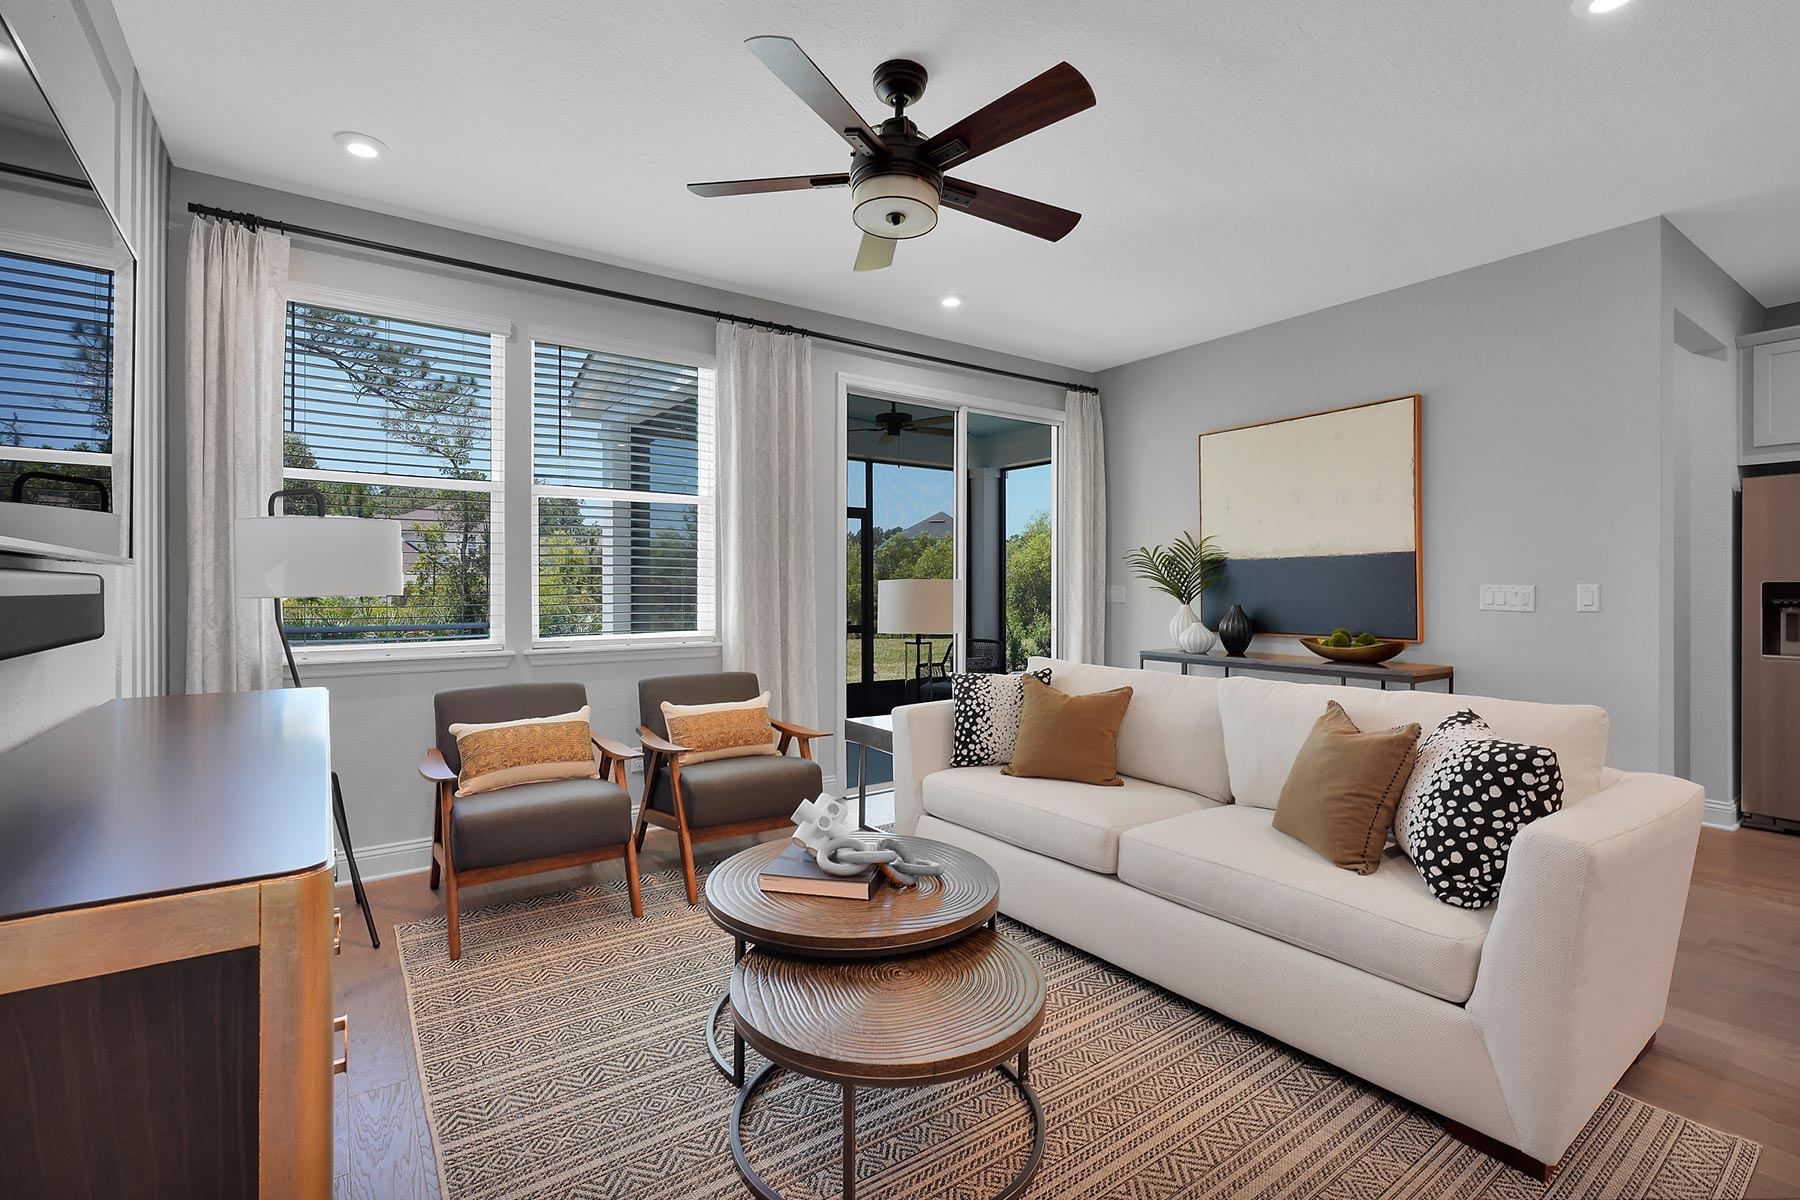 Pablo Cove Greatroom in Jacksonville Florida by Mattamy Homes